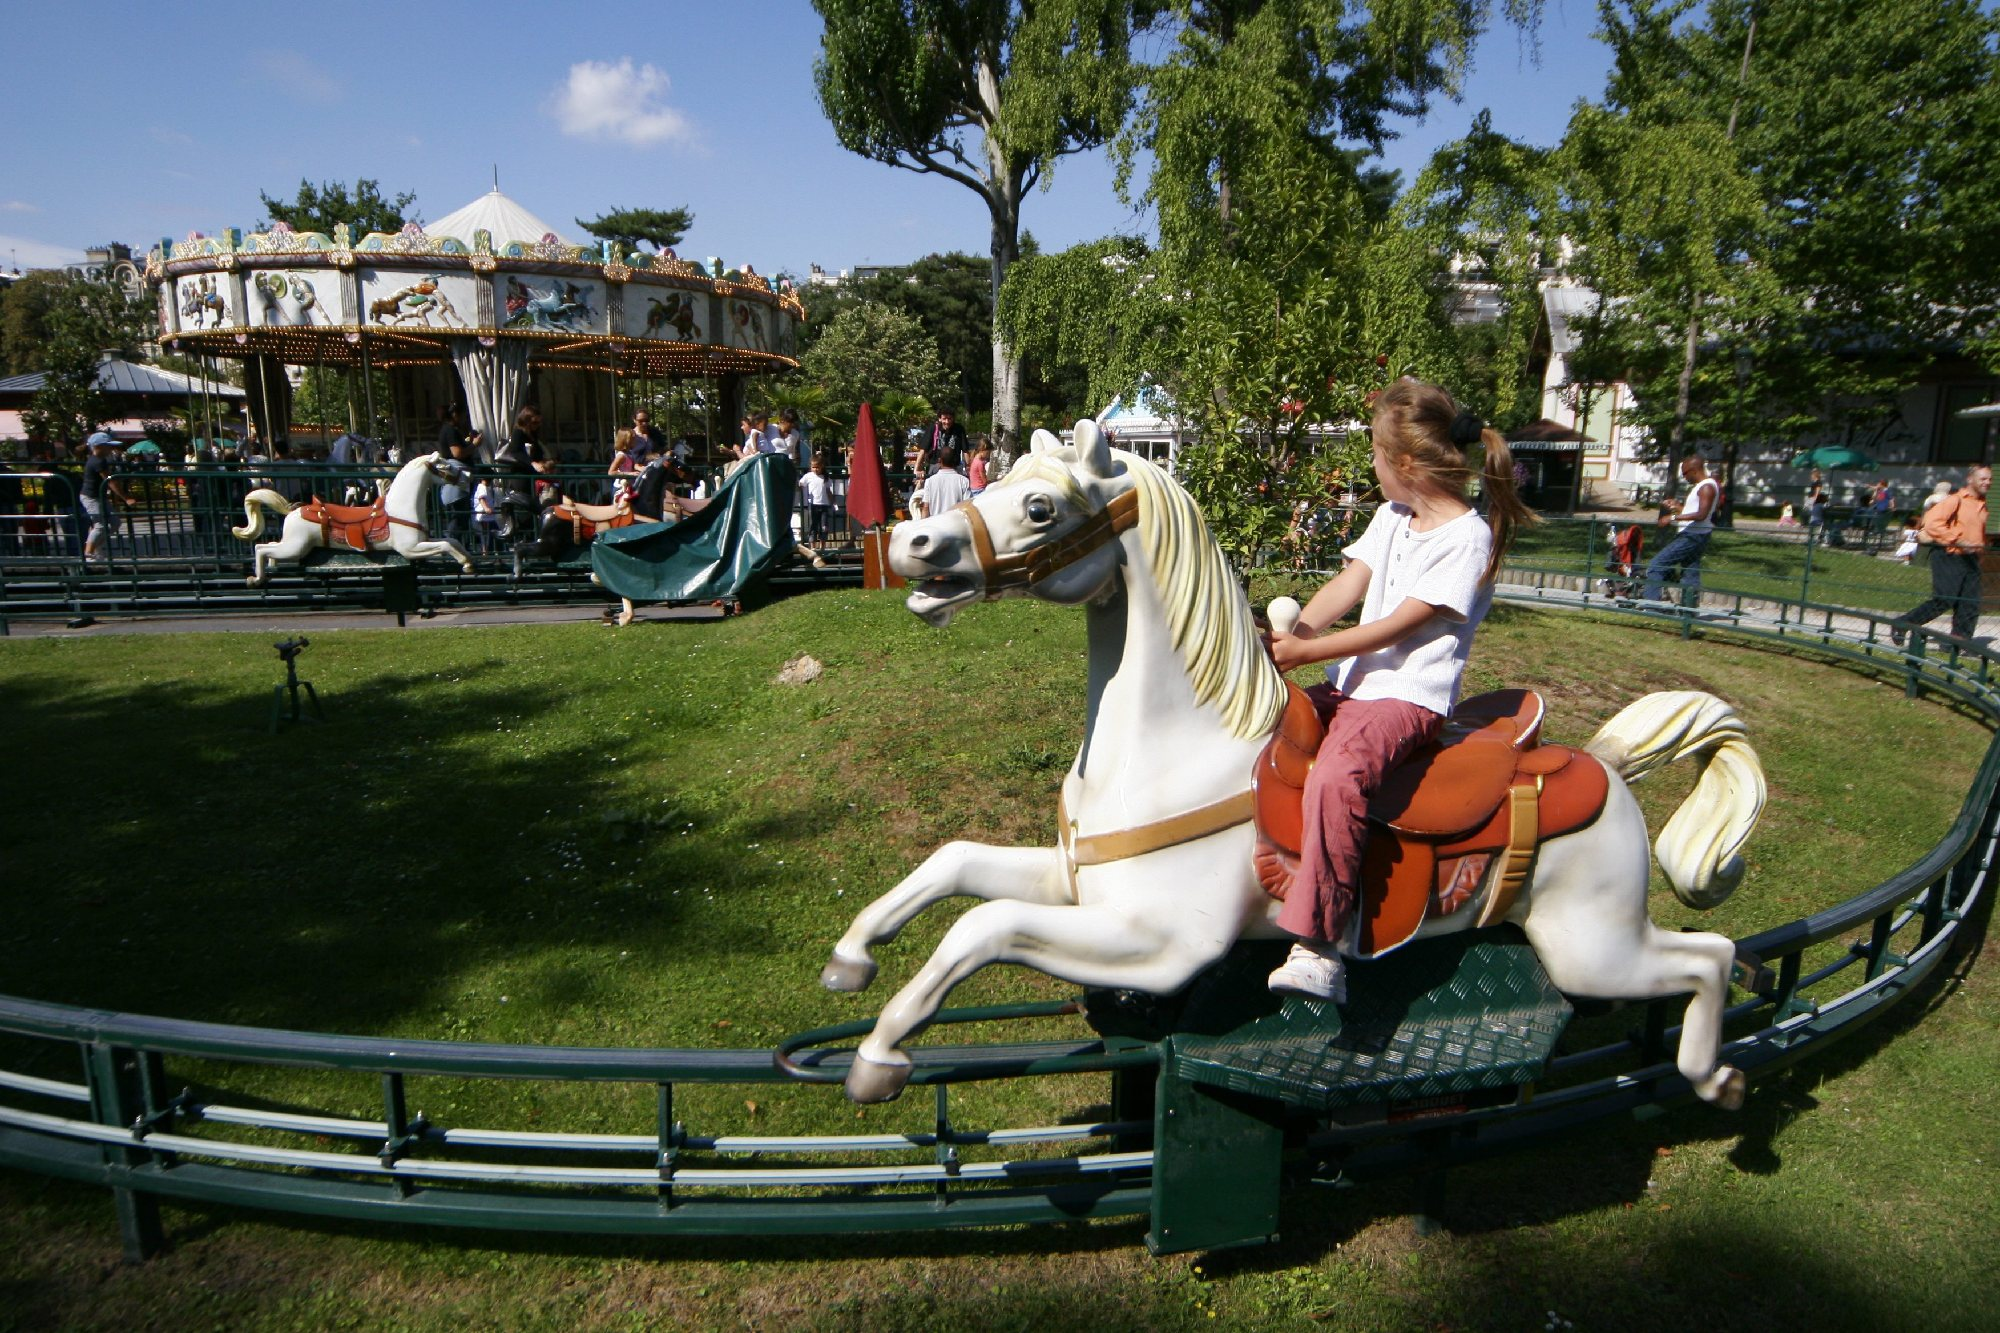 Hit the funfair at the Jardin d'Acclimatation